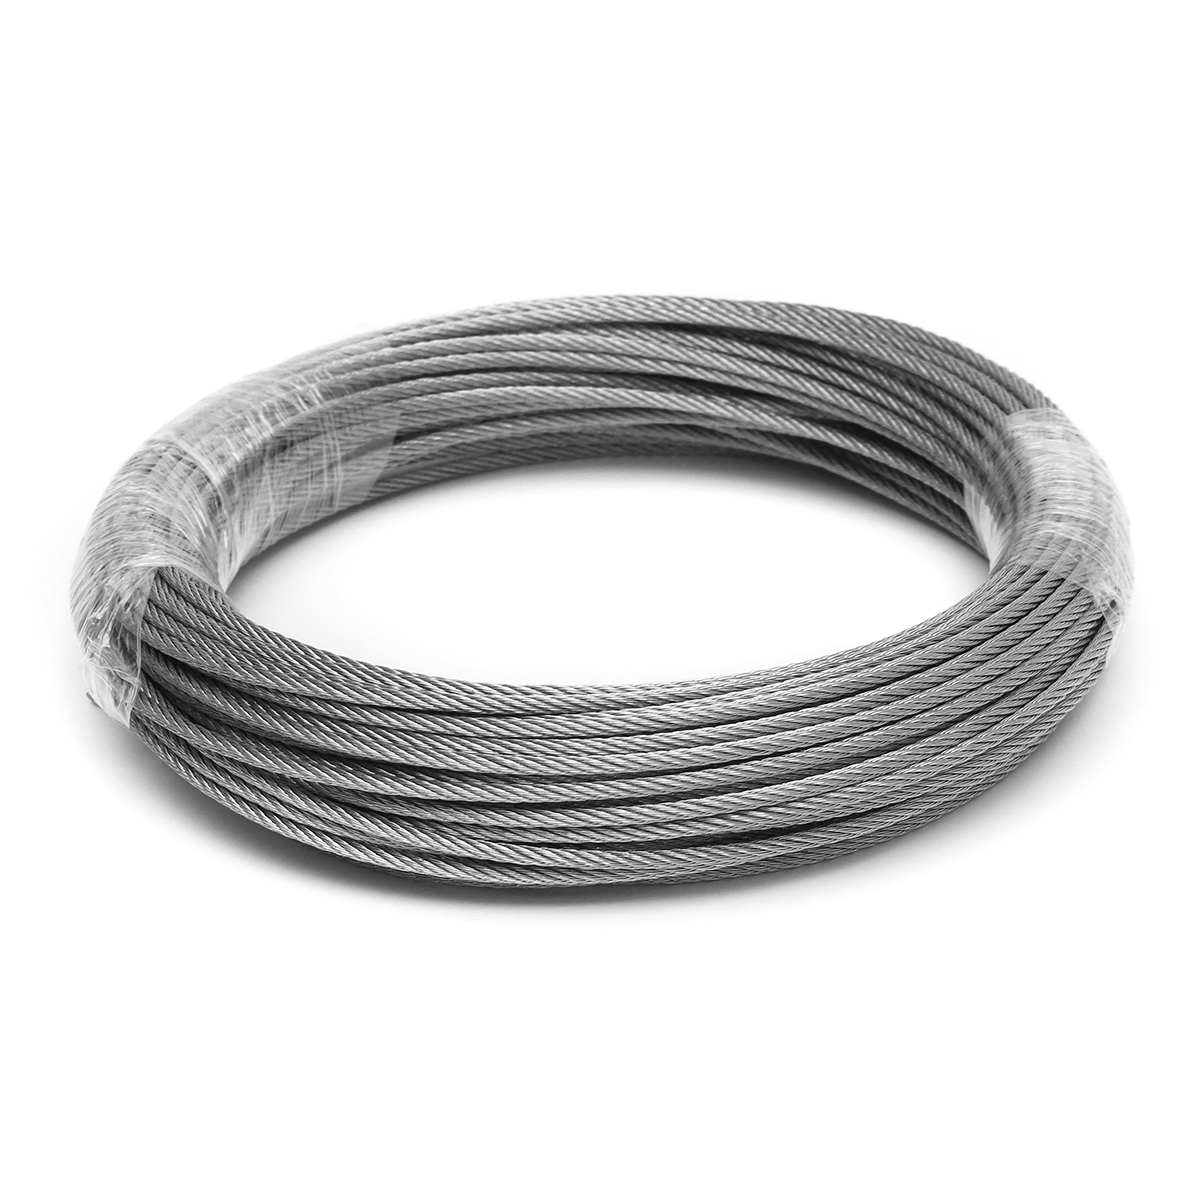 Steel Cable Kauschen Stainless Steel Hardened Loops Cable 1m 2m 3m 5m 10m 20m 50m